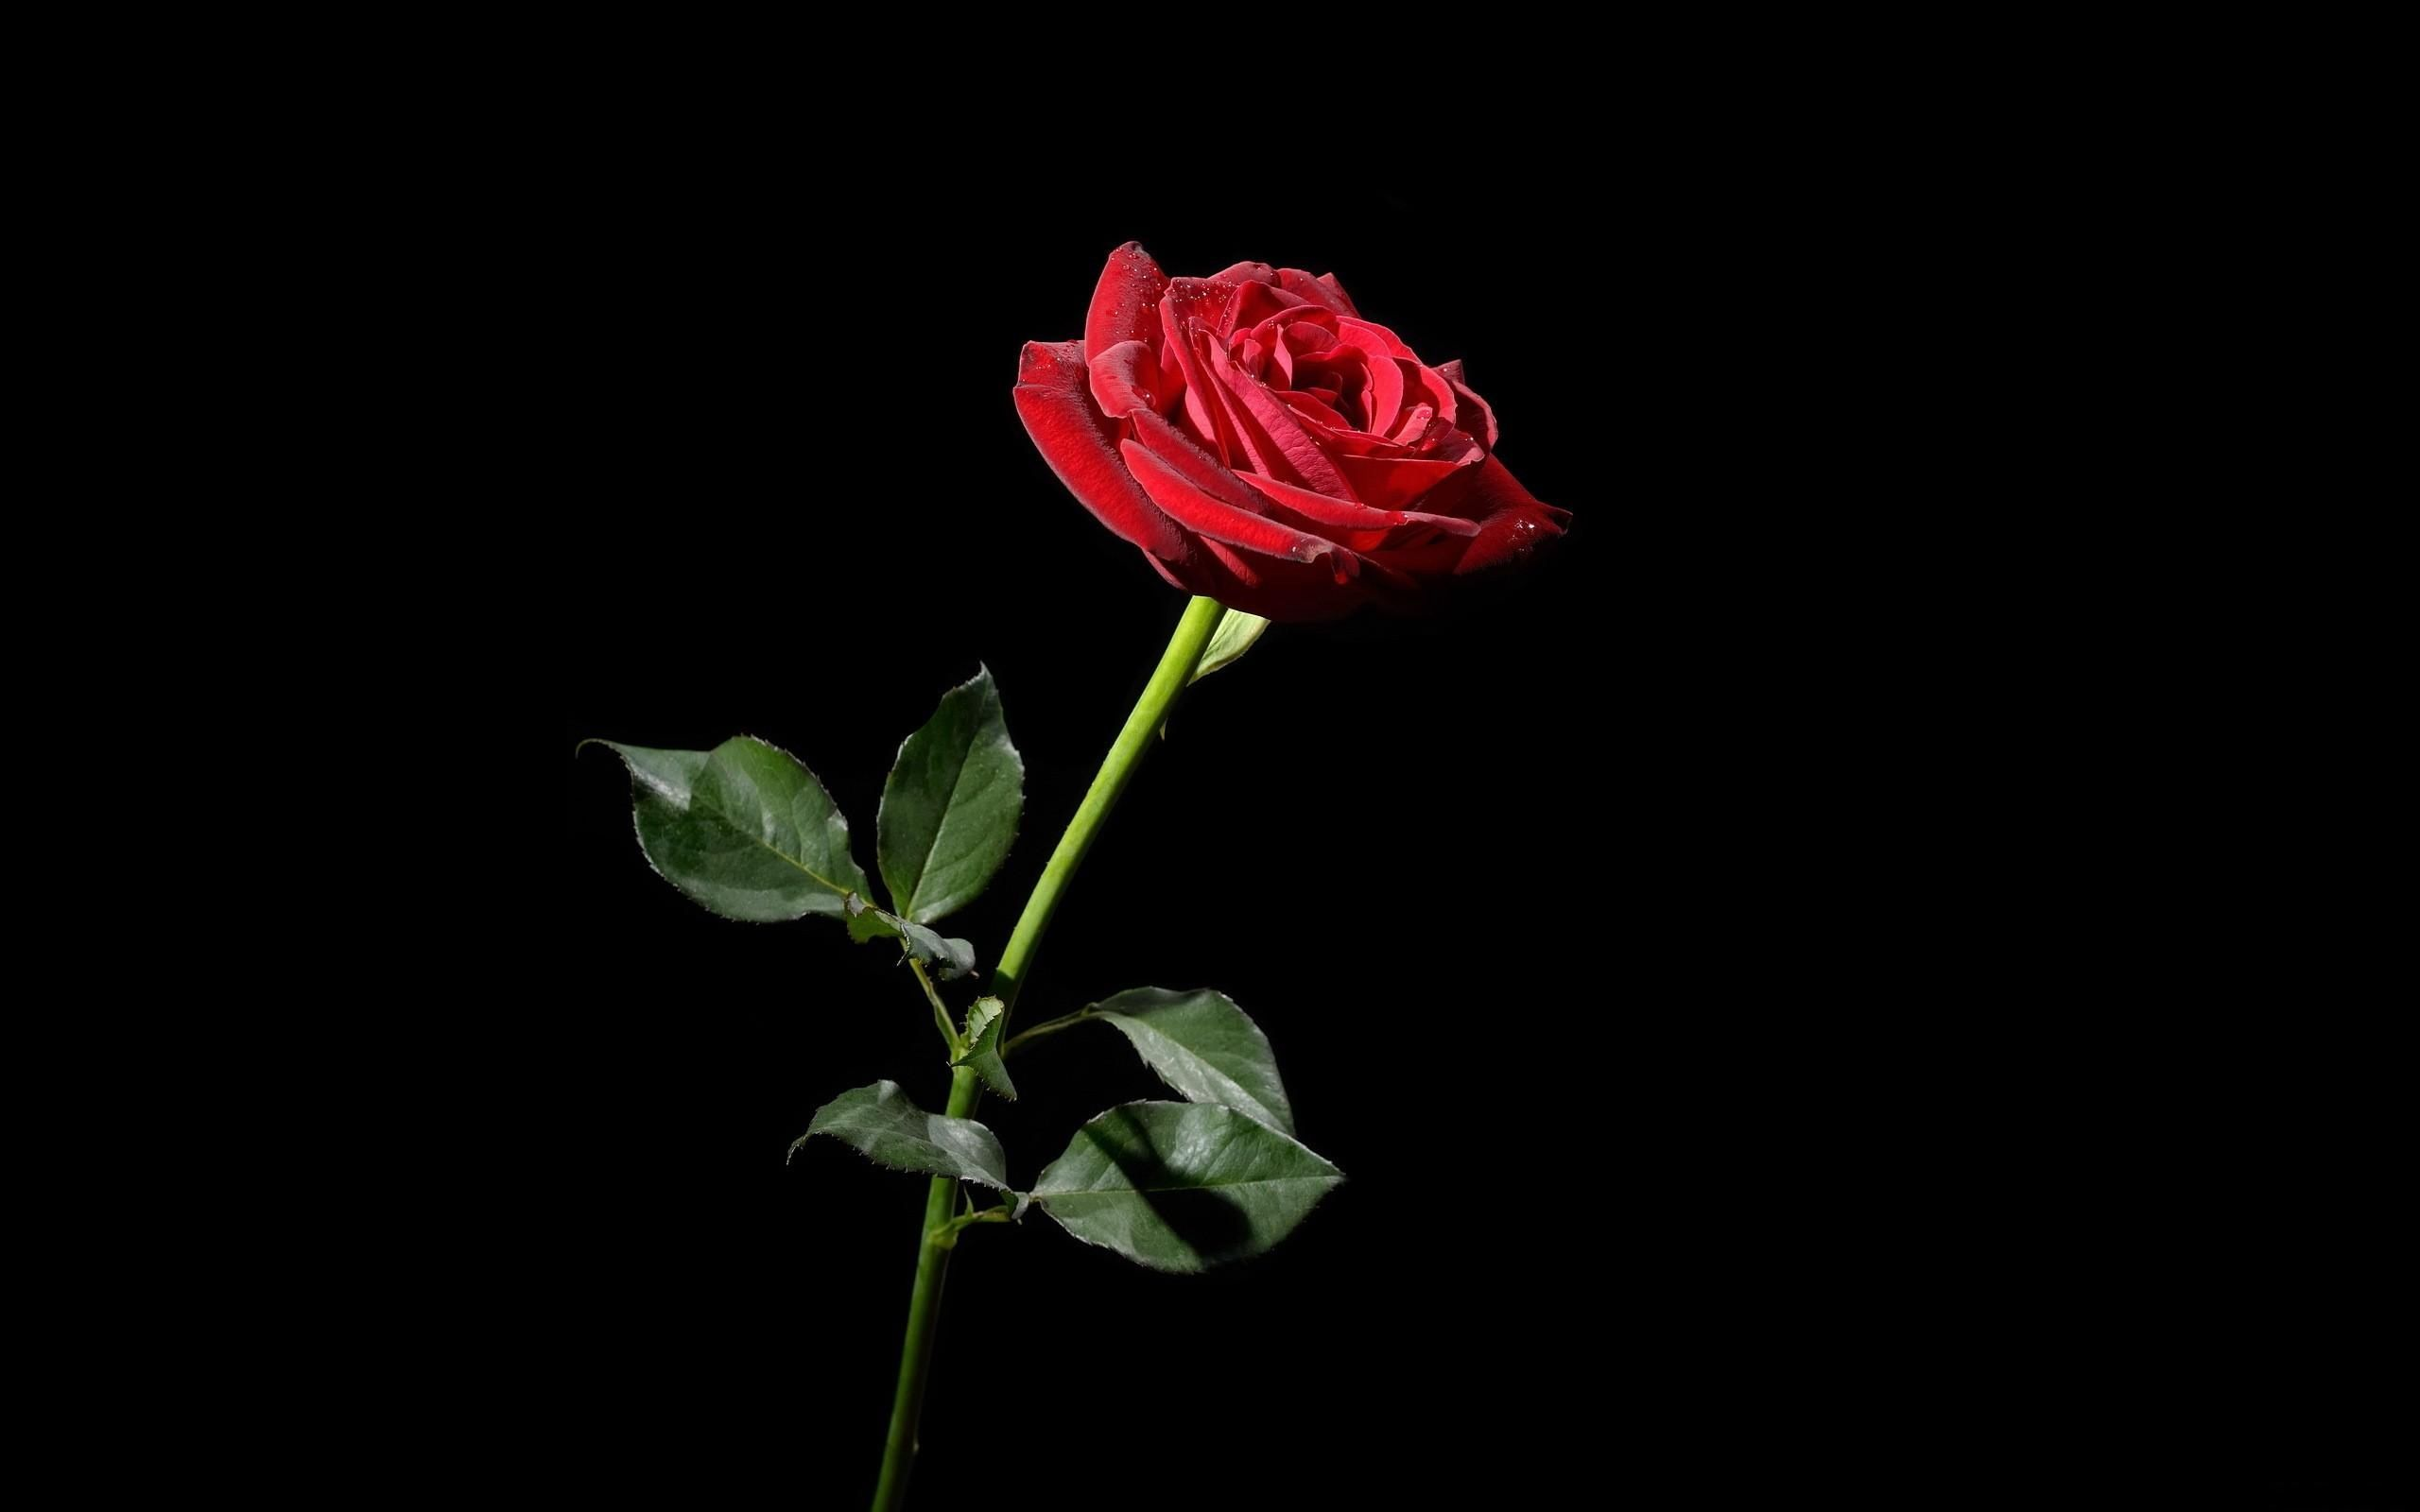 Black And Red Rose Wallpapers Top Free Black And Red Rose